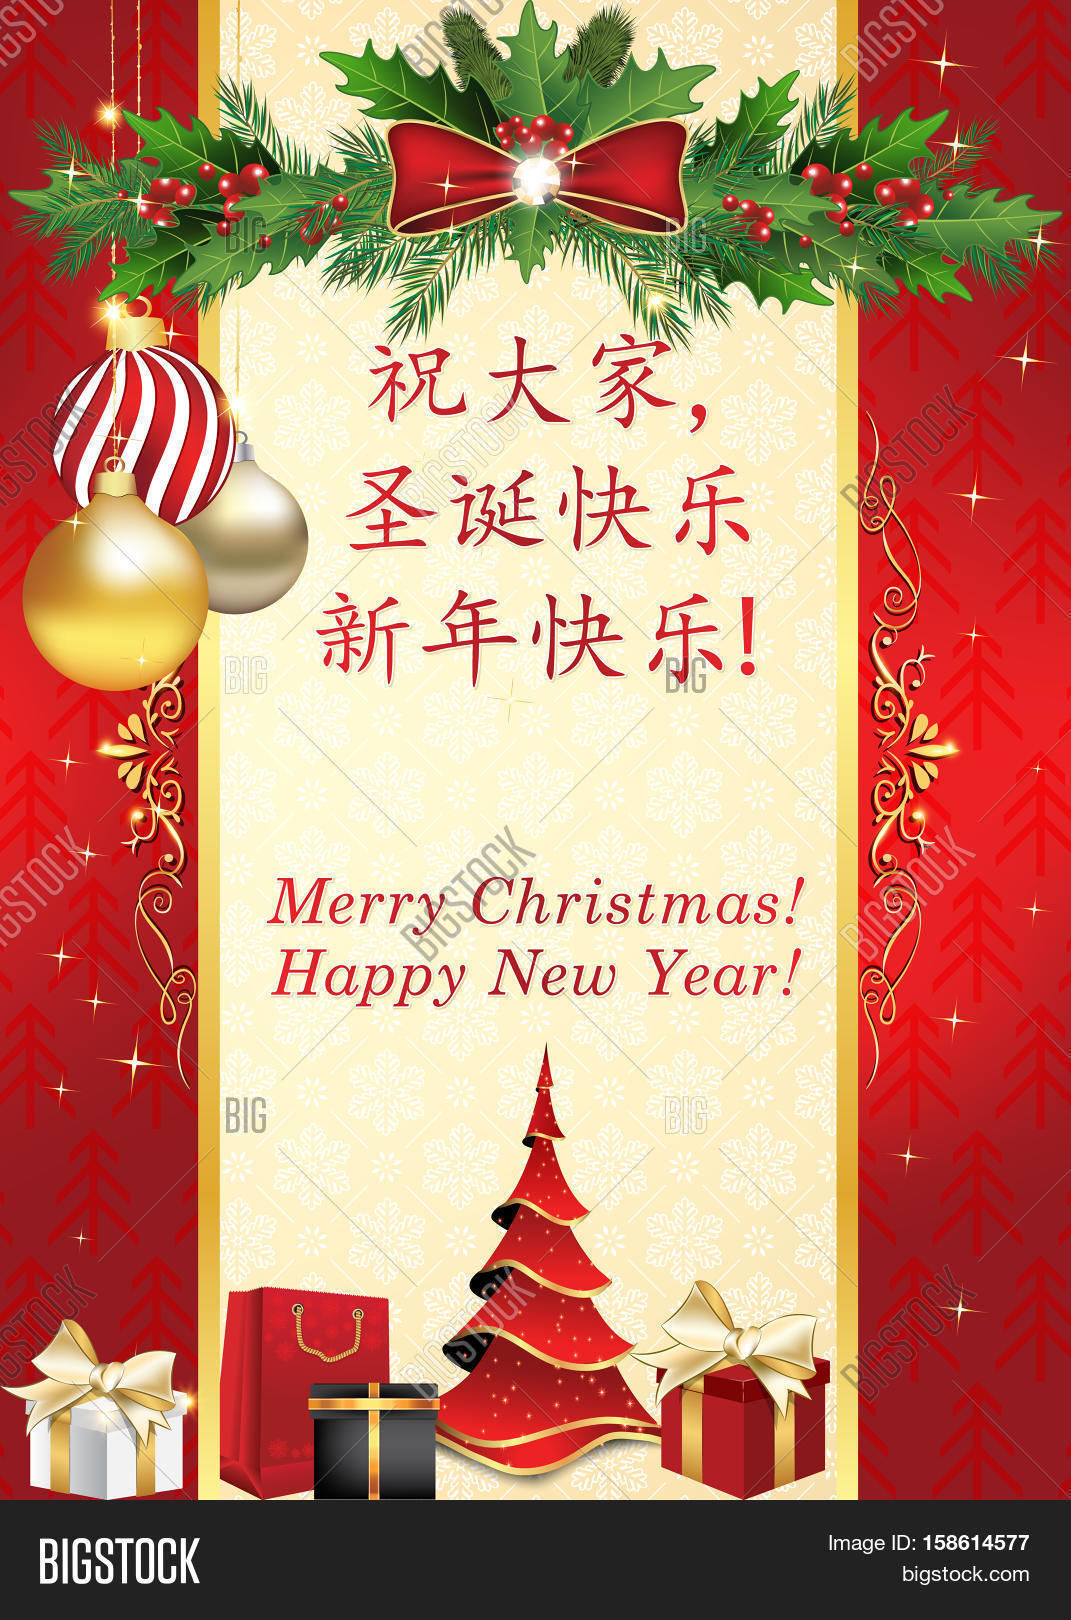 Greeting card image photo free trial bigstock greeting card for christmas and new year in chinese and english language chinese text m4hsunfo